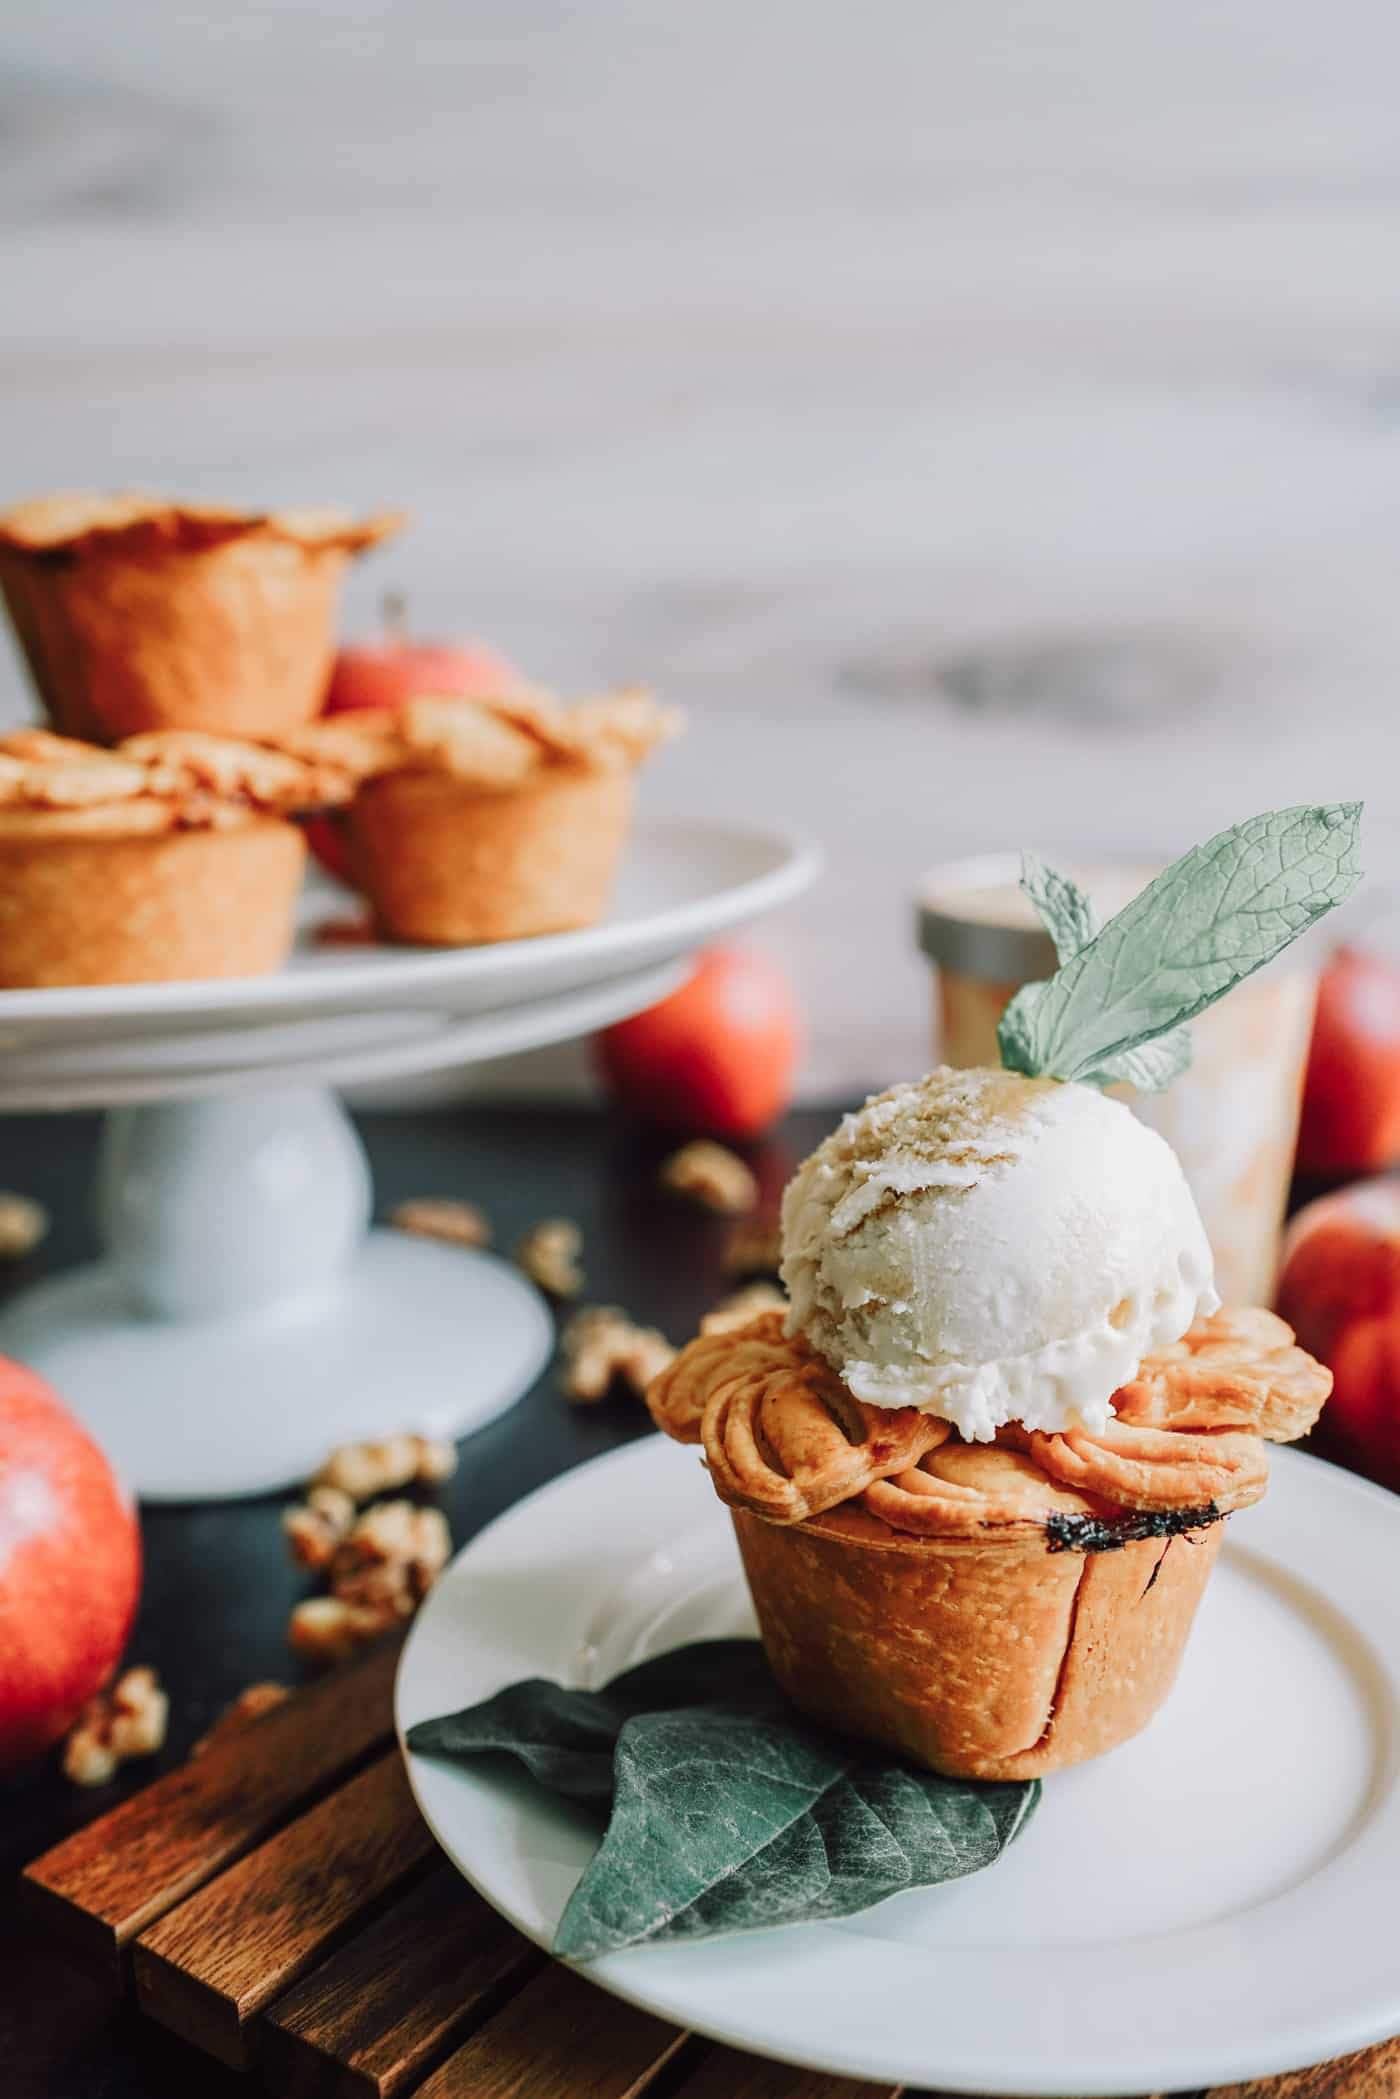 A Lily Love Affair shares a mini vegan apple pie recipe topped with vegan ice cream